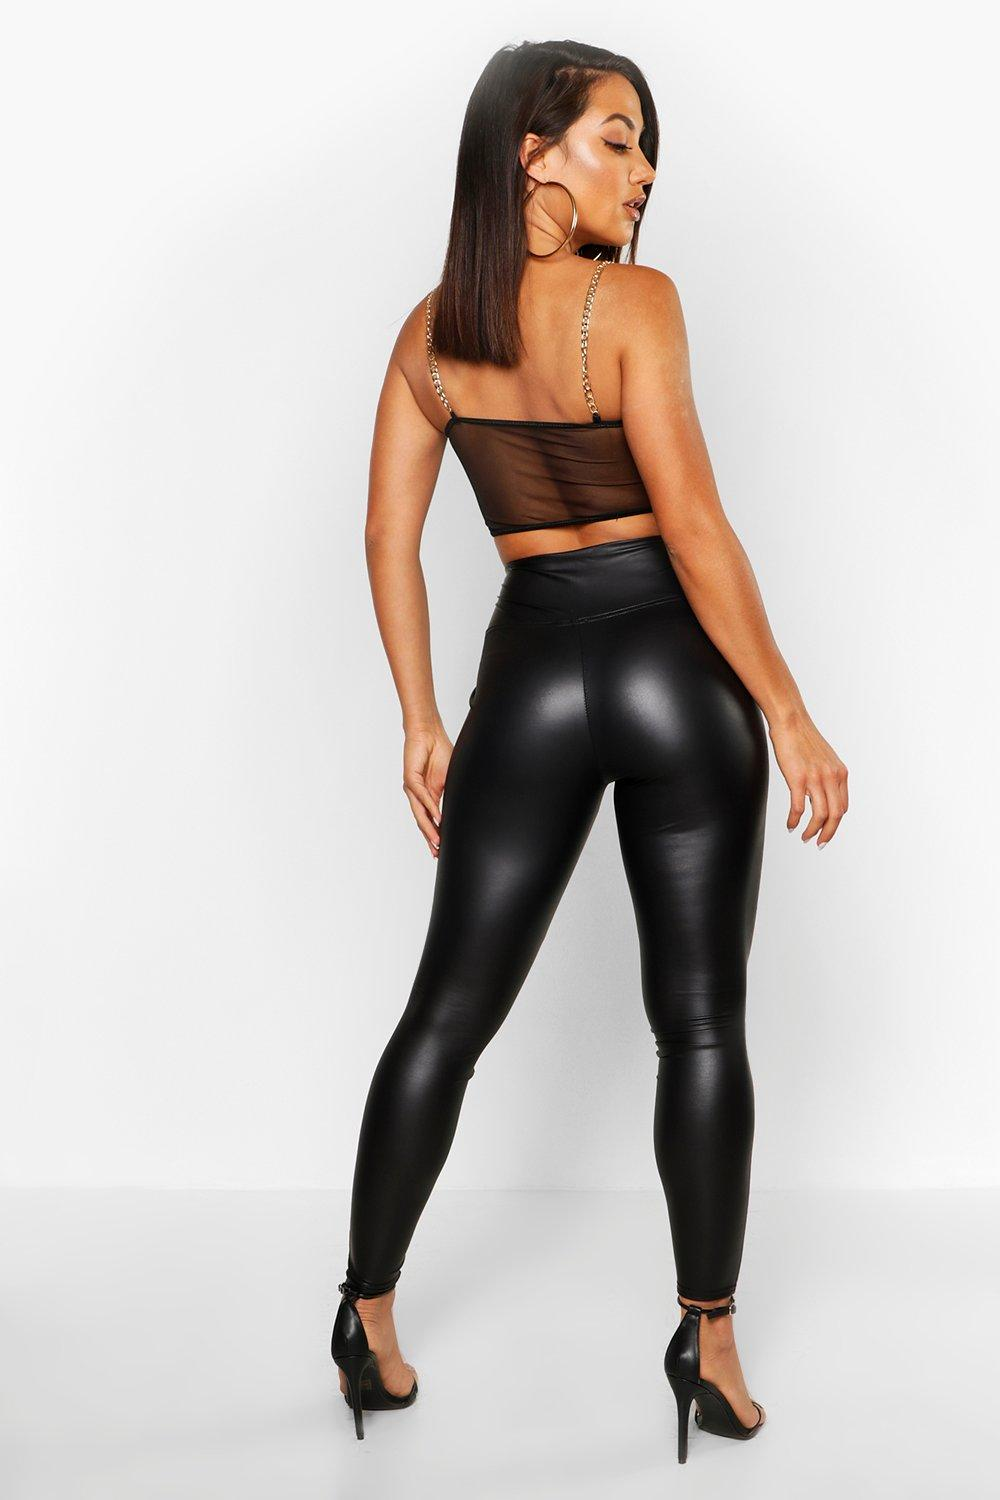 Roselyn High Waist Leather Stretch Leggings - Woven Trends